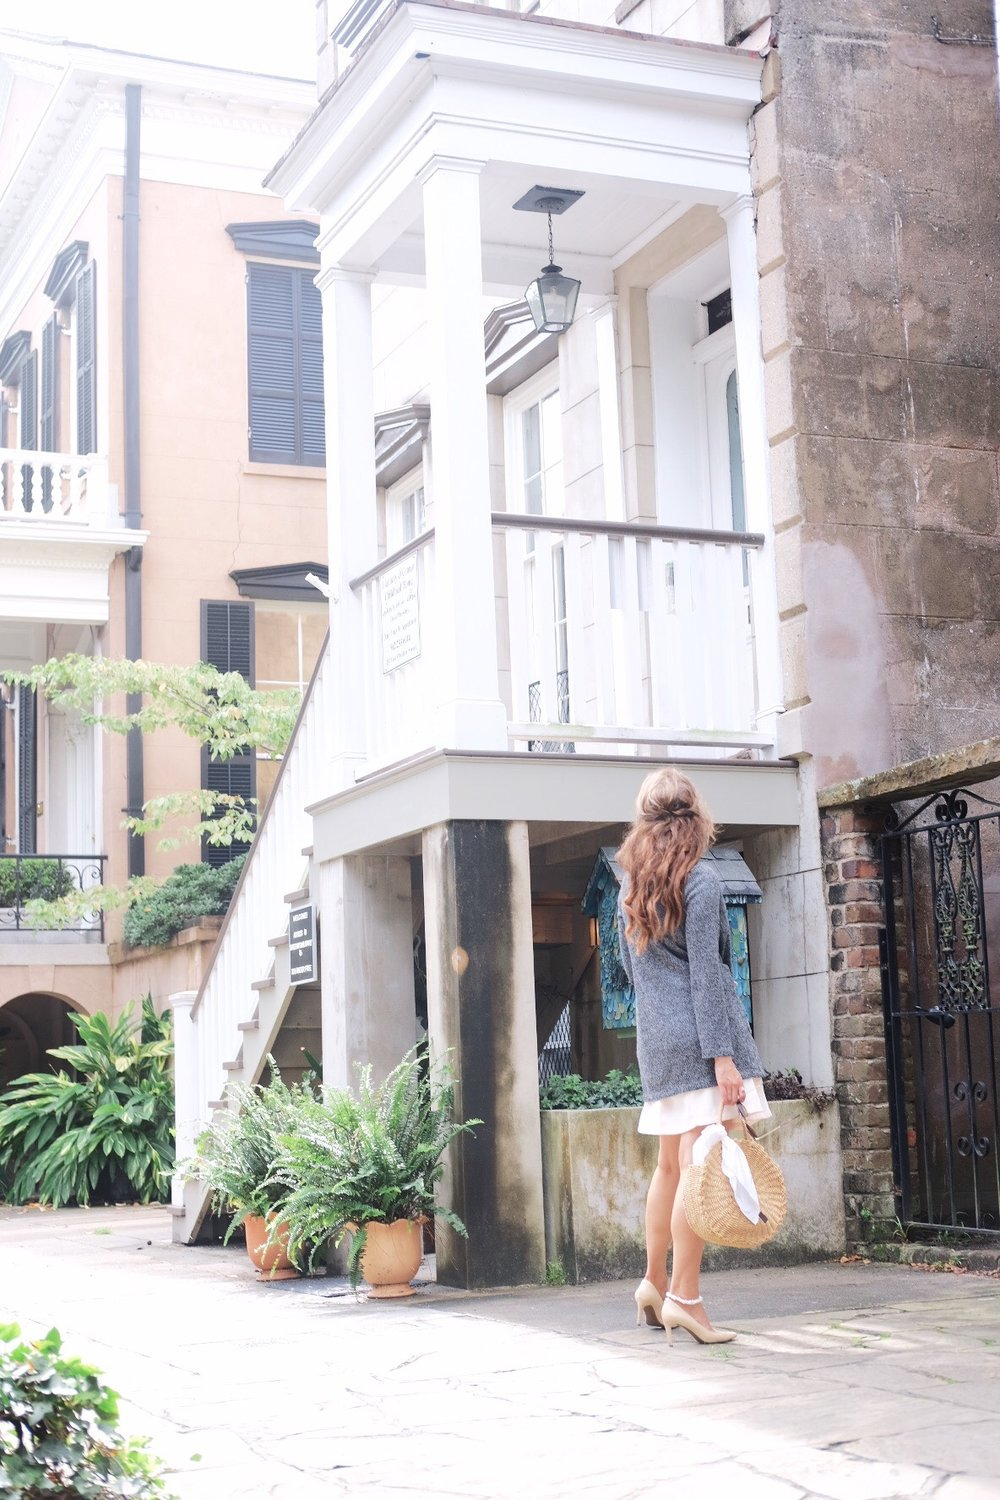 Brenna in front of Flannery O'connor House